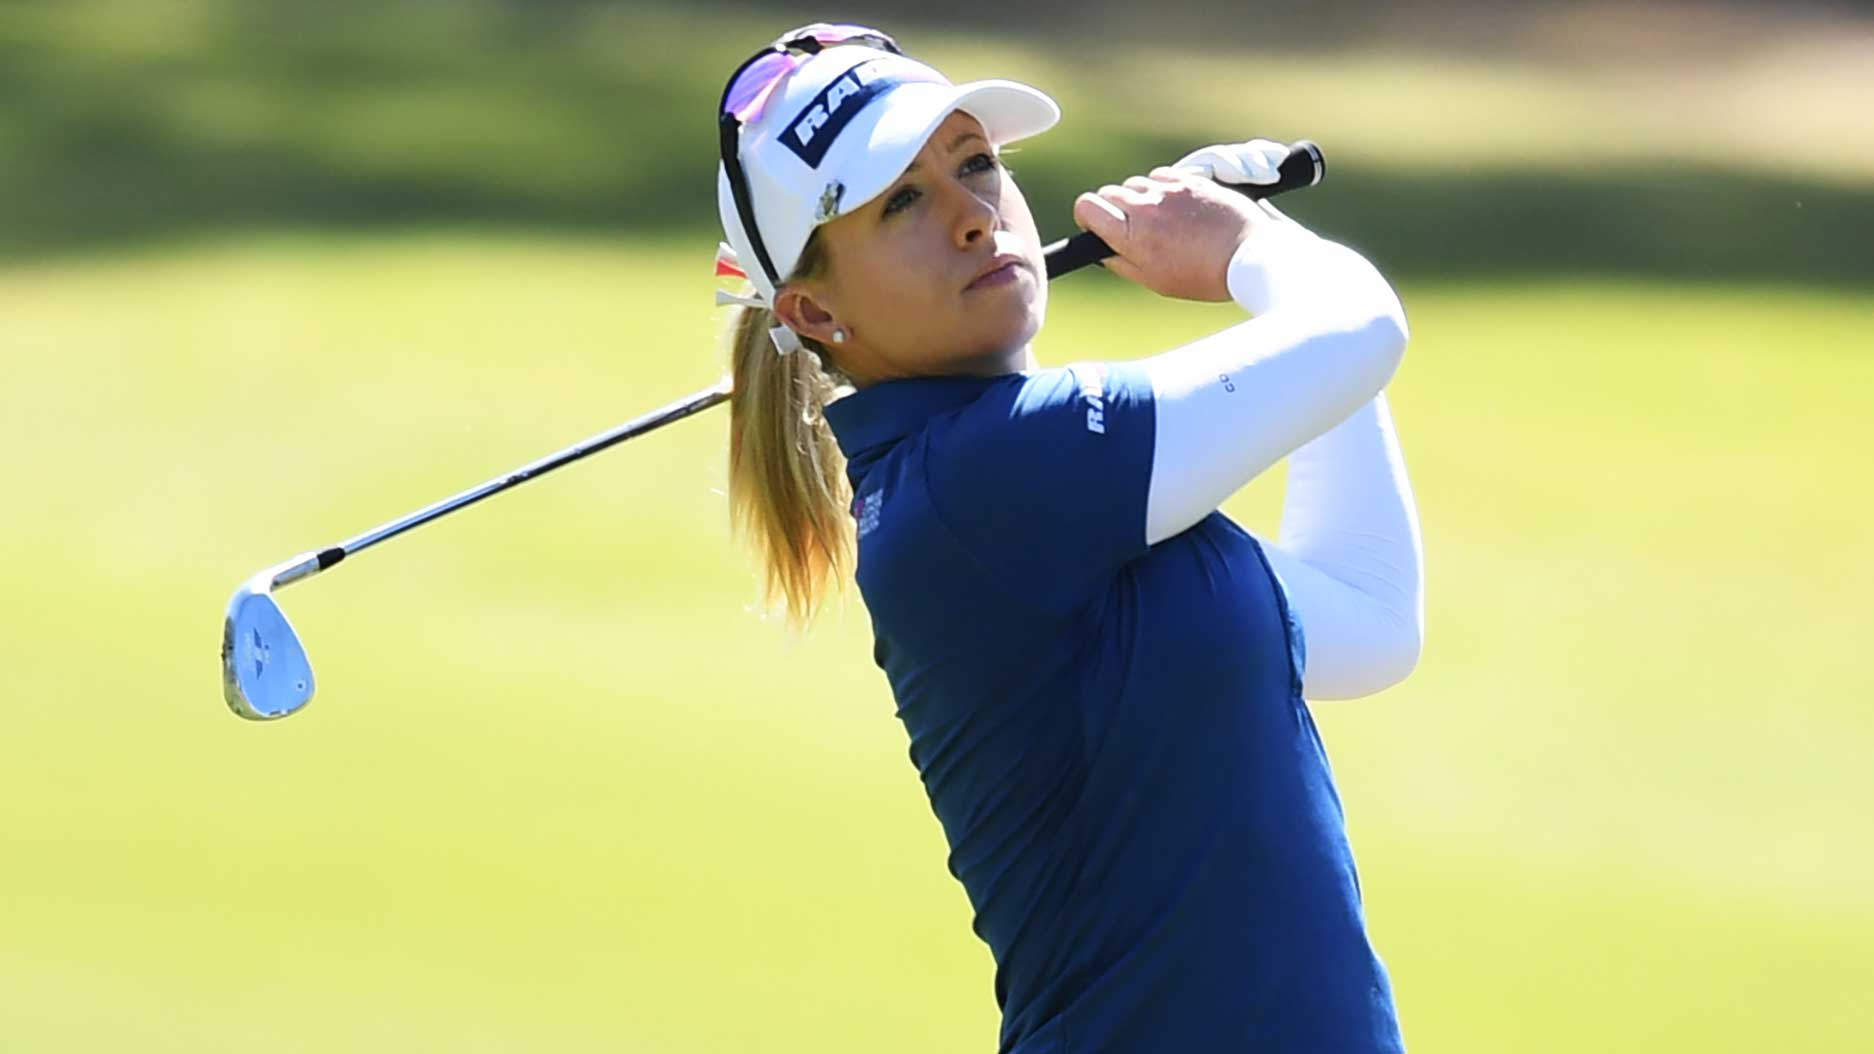 Jodi Ewart Shadoff of Great Britain during day one of the 2019 ISPS Handa Women's Australian Open